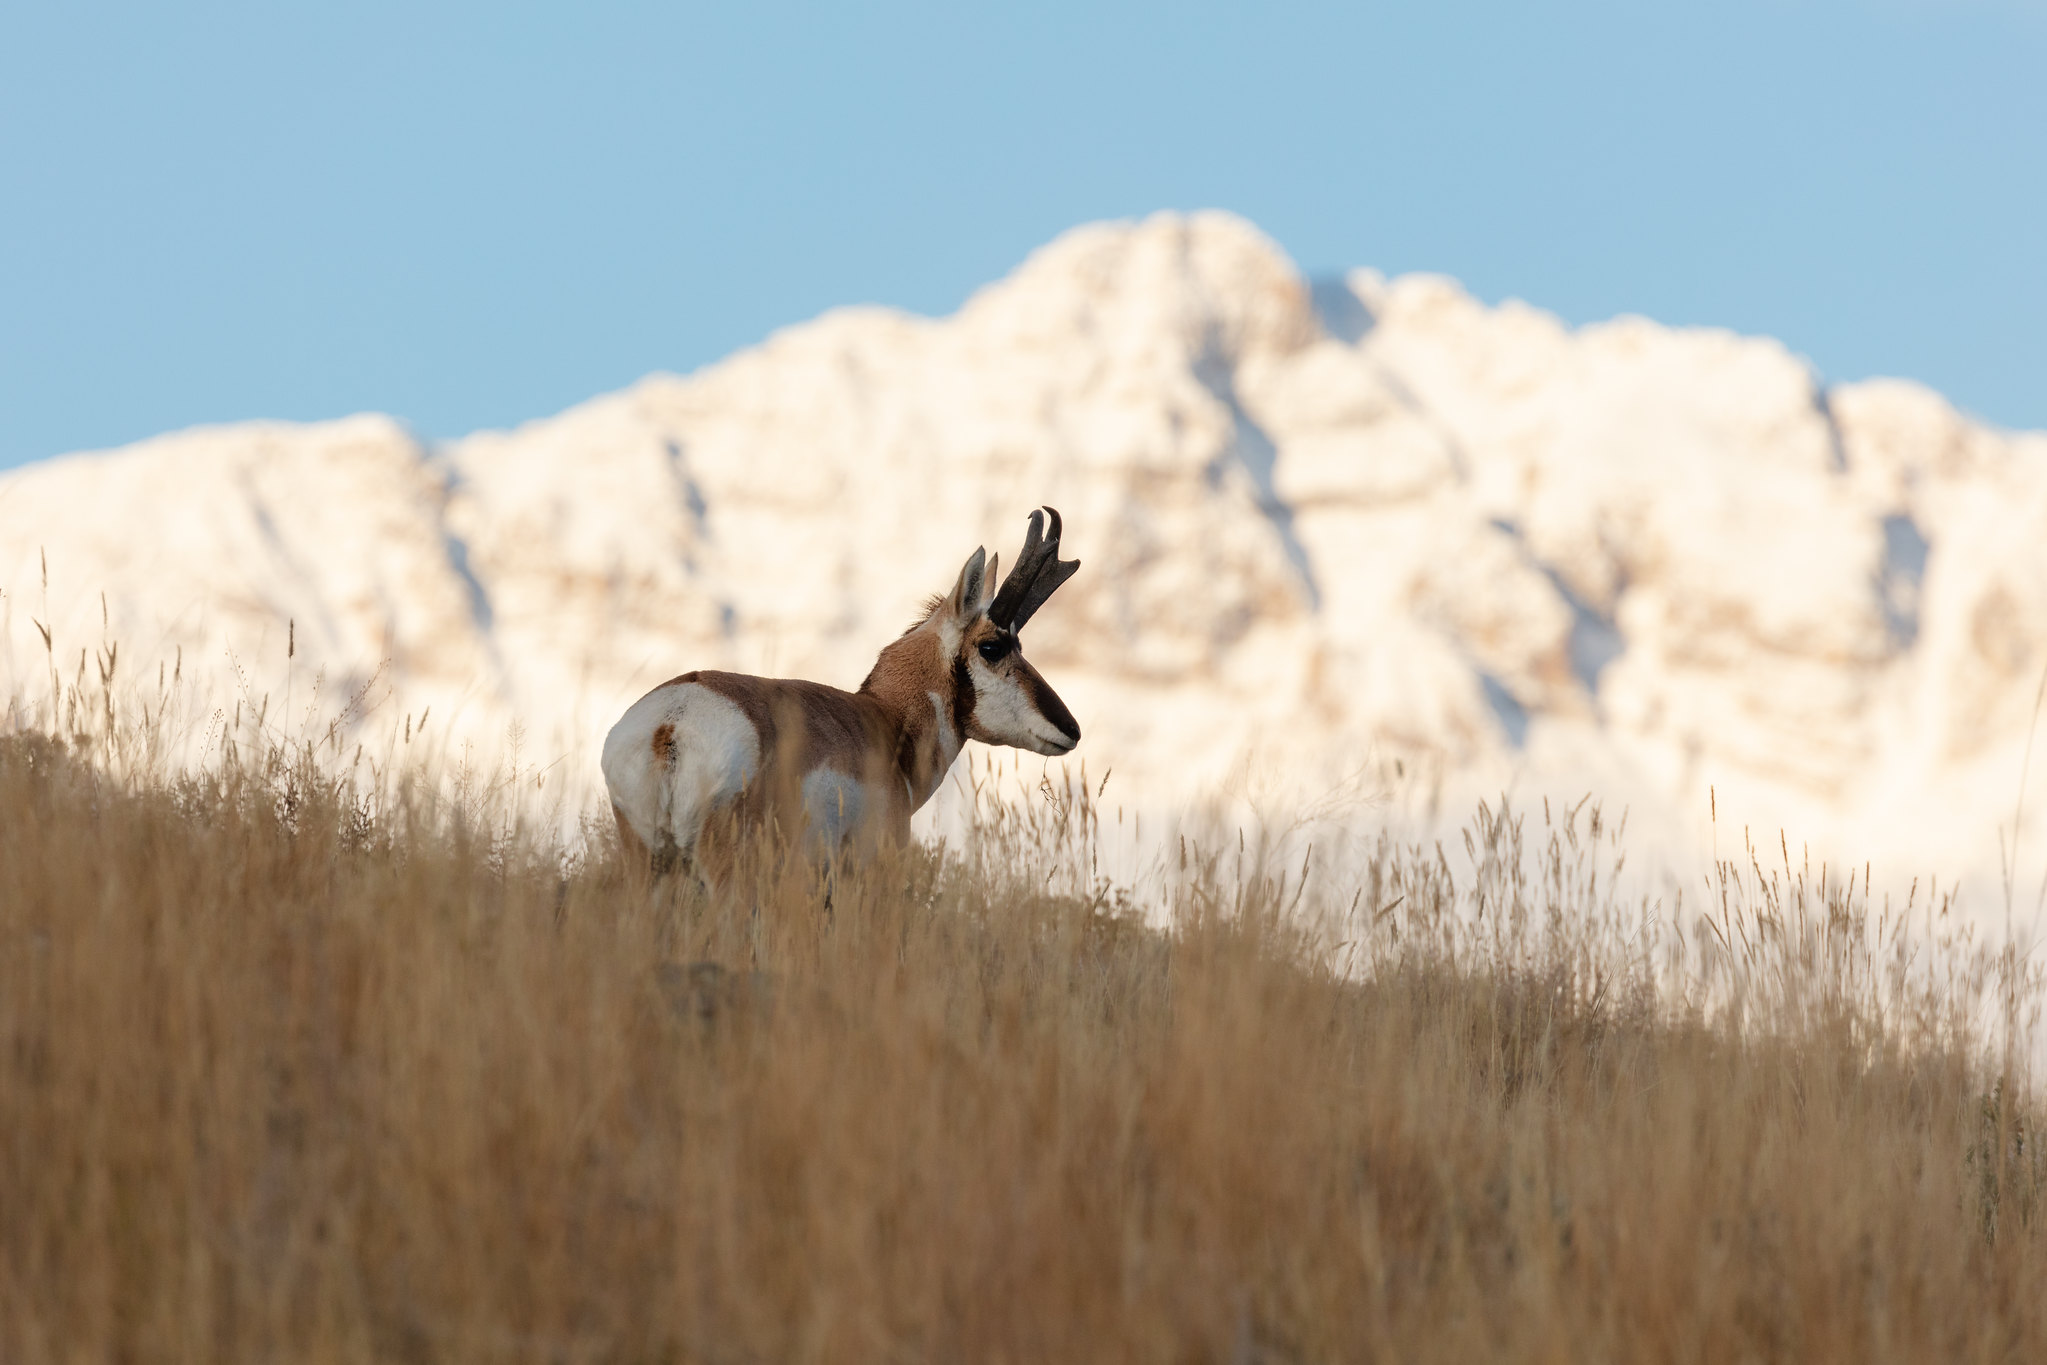 pronghorn standing in grass with mountain in the background